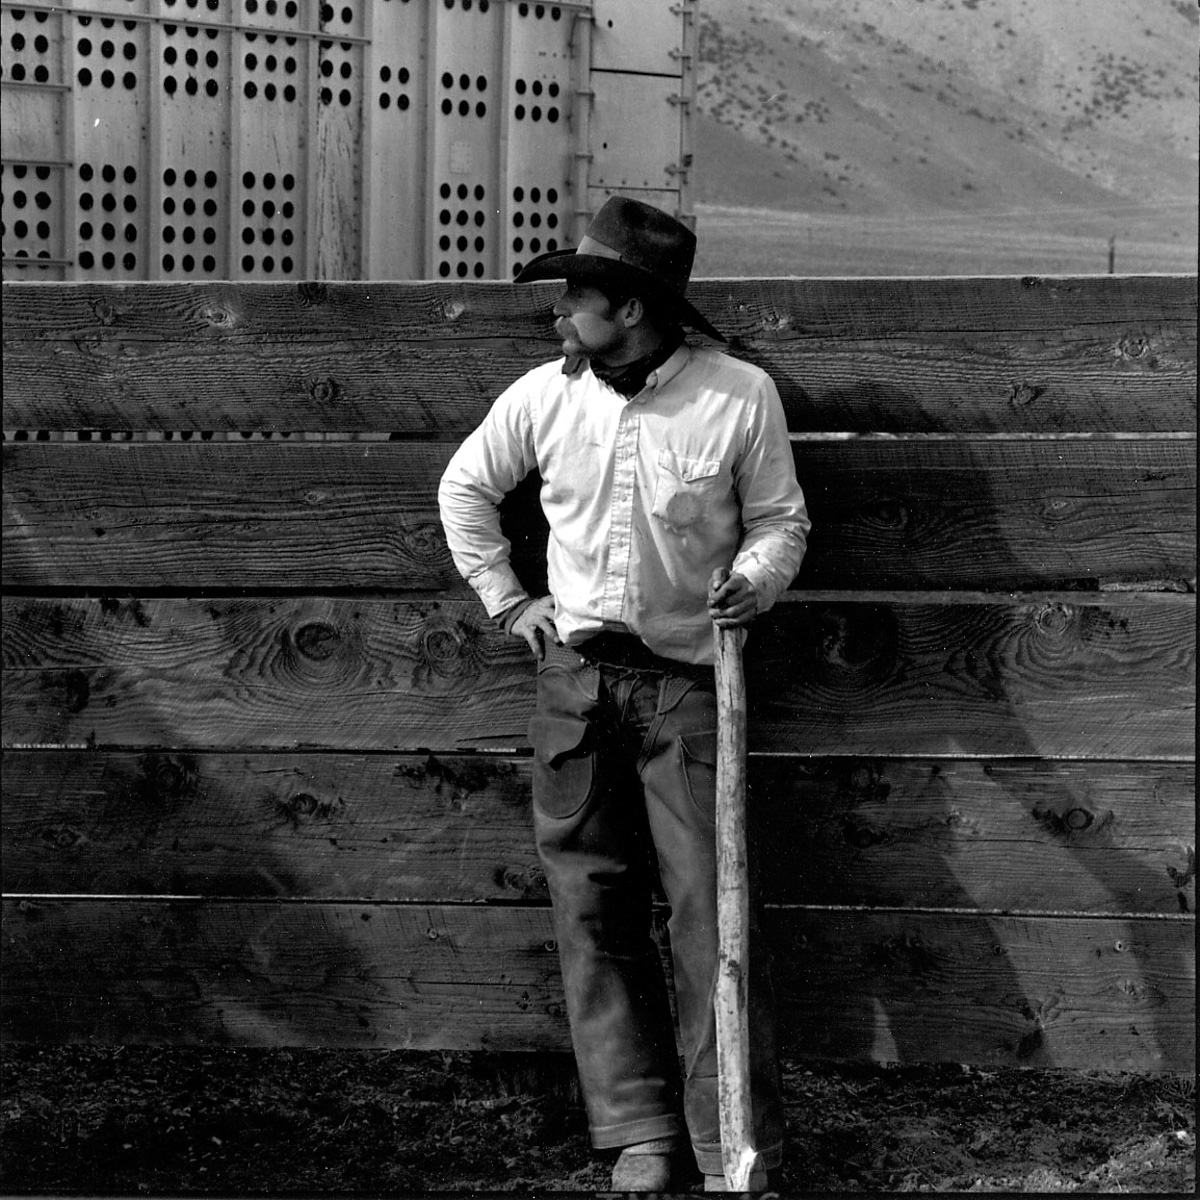 Mike McLaughlin, Fish Creek Ranch, Nevada, 1990